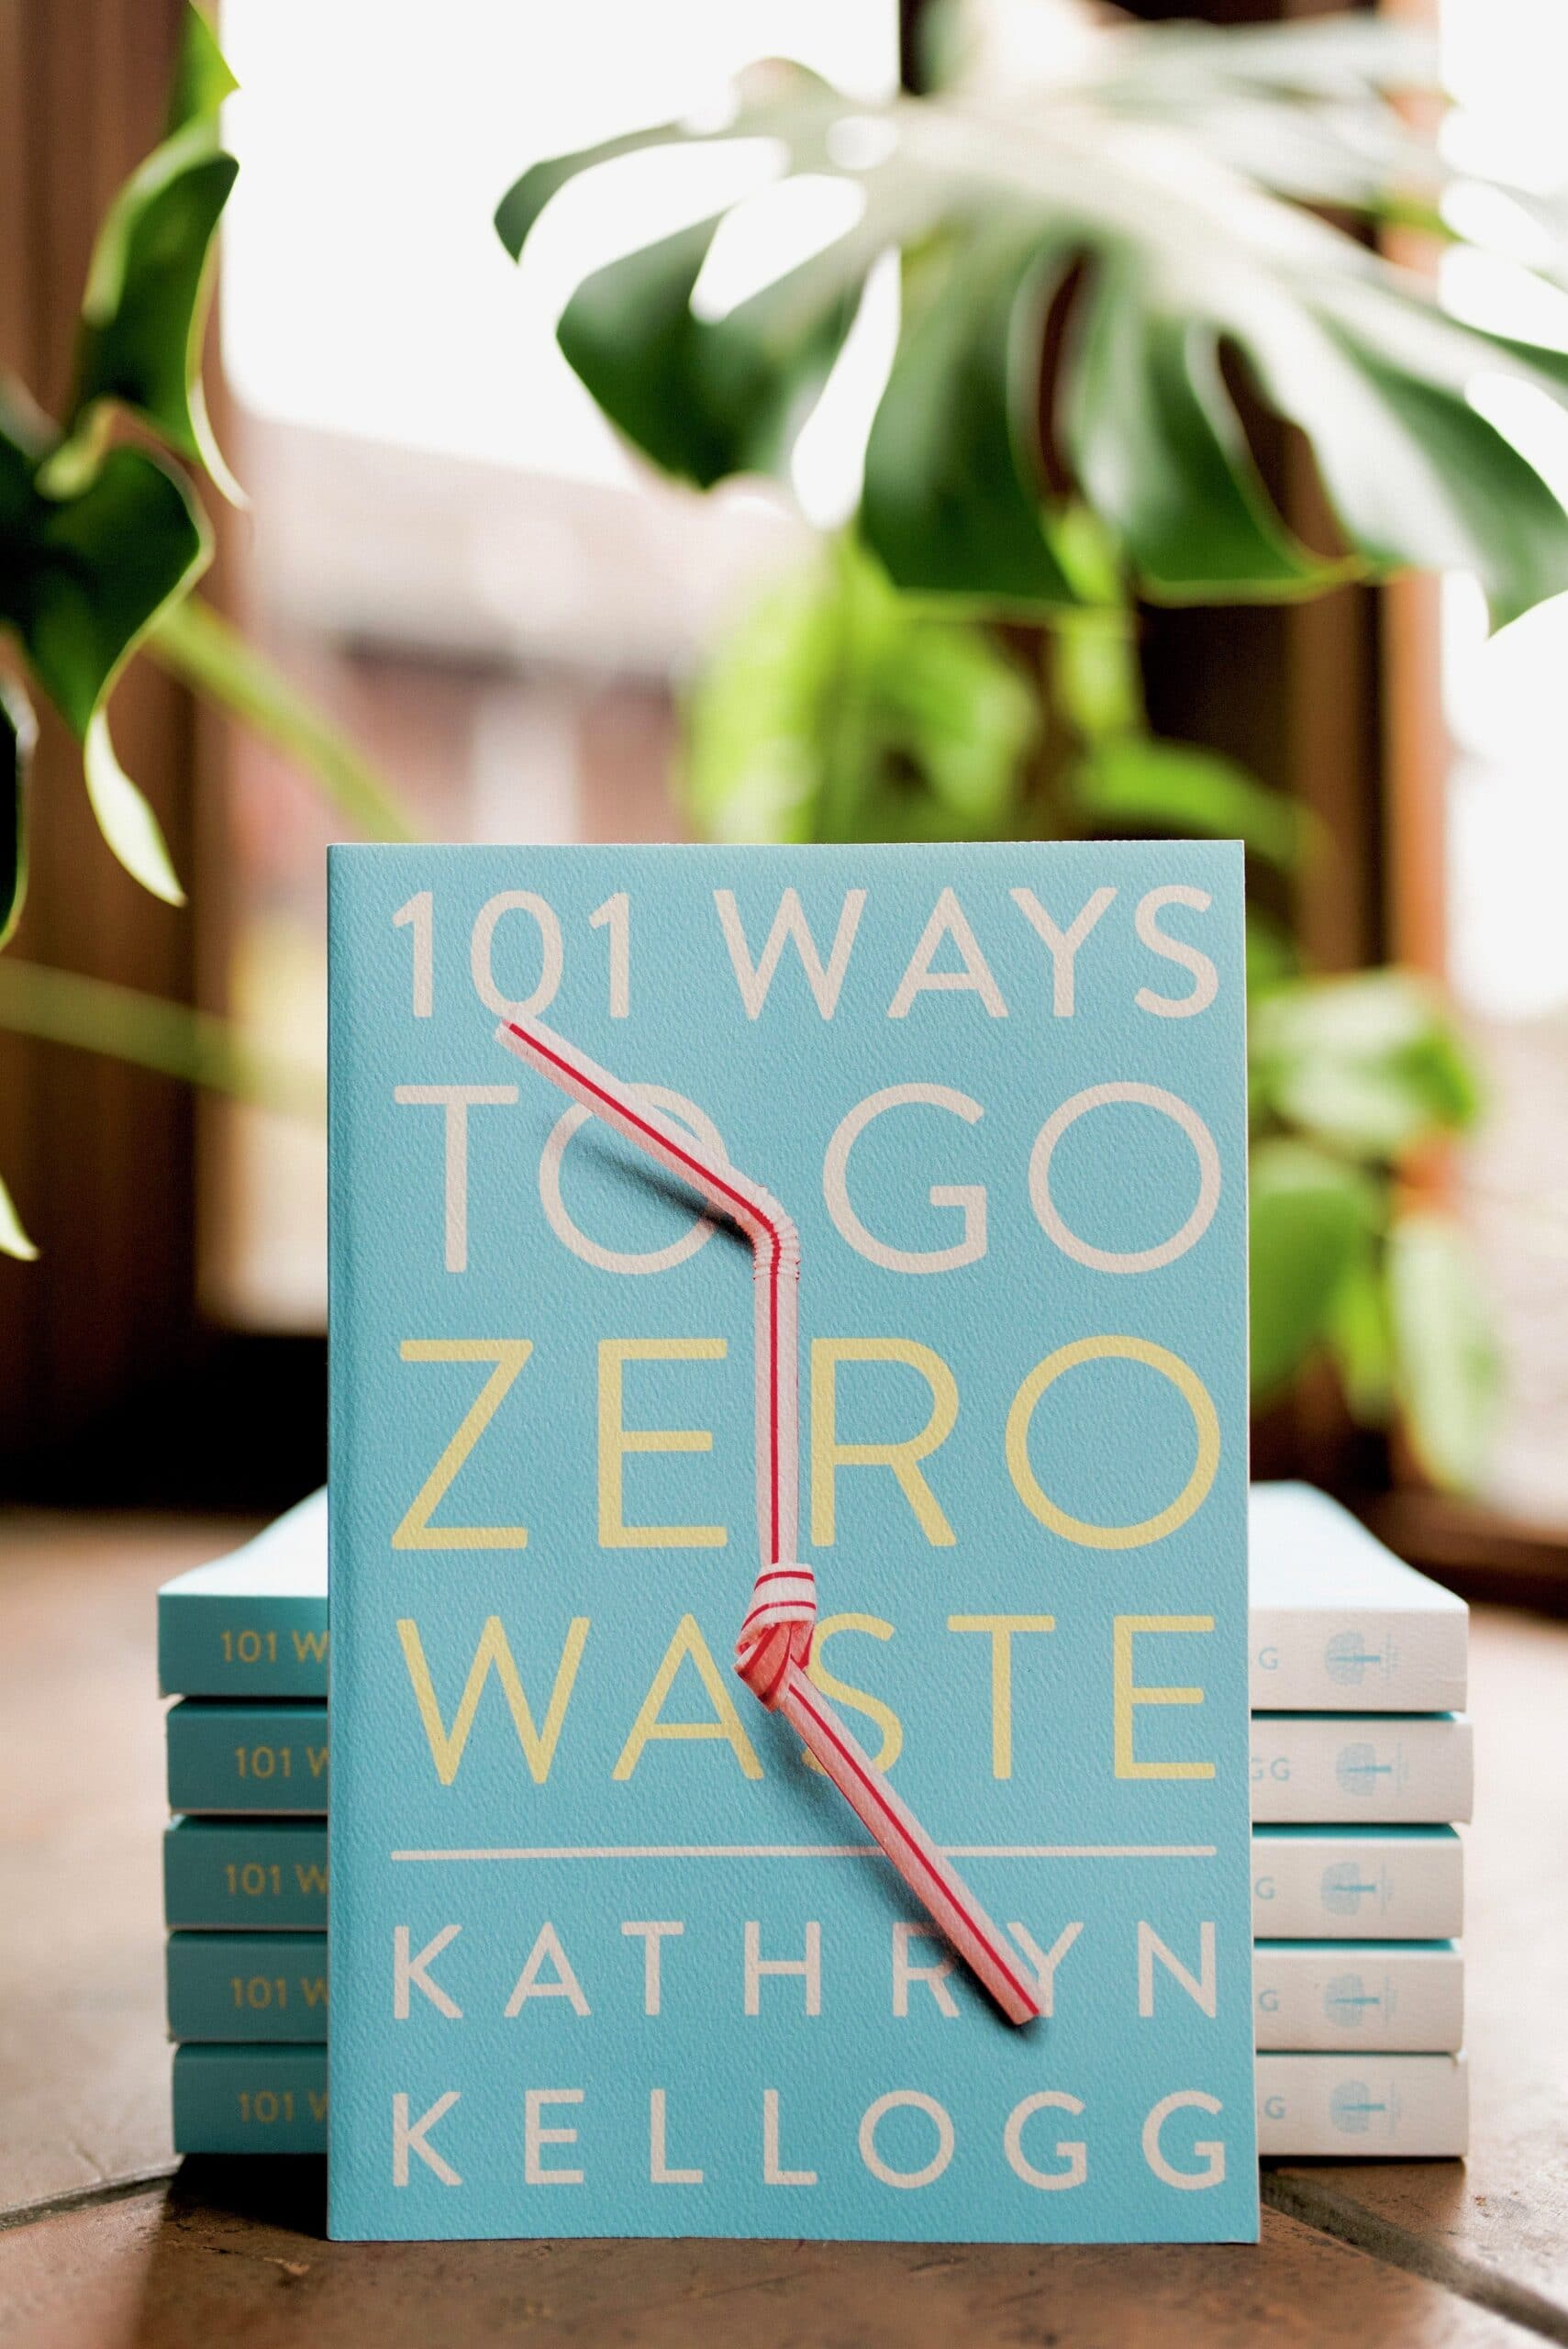 101 Ways to Go Zero Waste from www.goingzerowaste.com #zerowaste #ecofriendly #gogreen #sustainable #zerowastechallenge #challenge #sustainablelivingchallenge